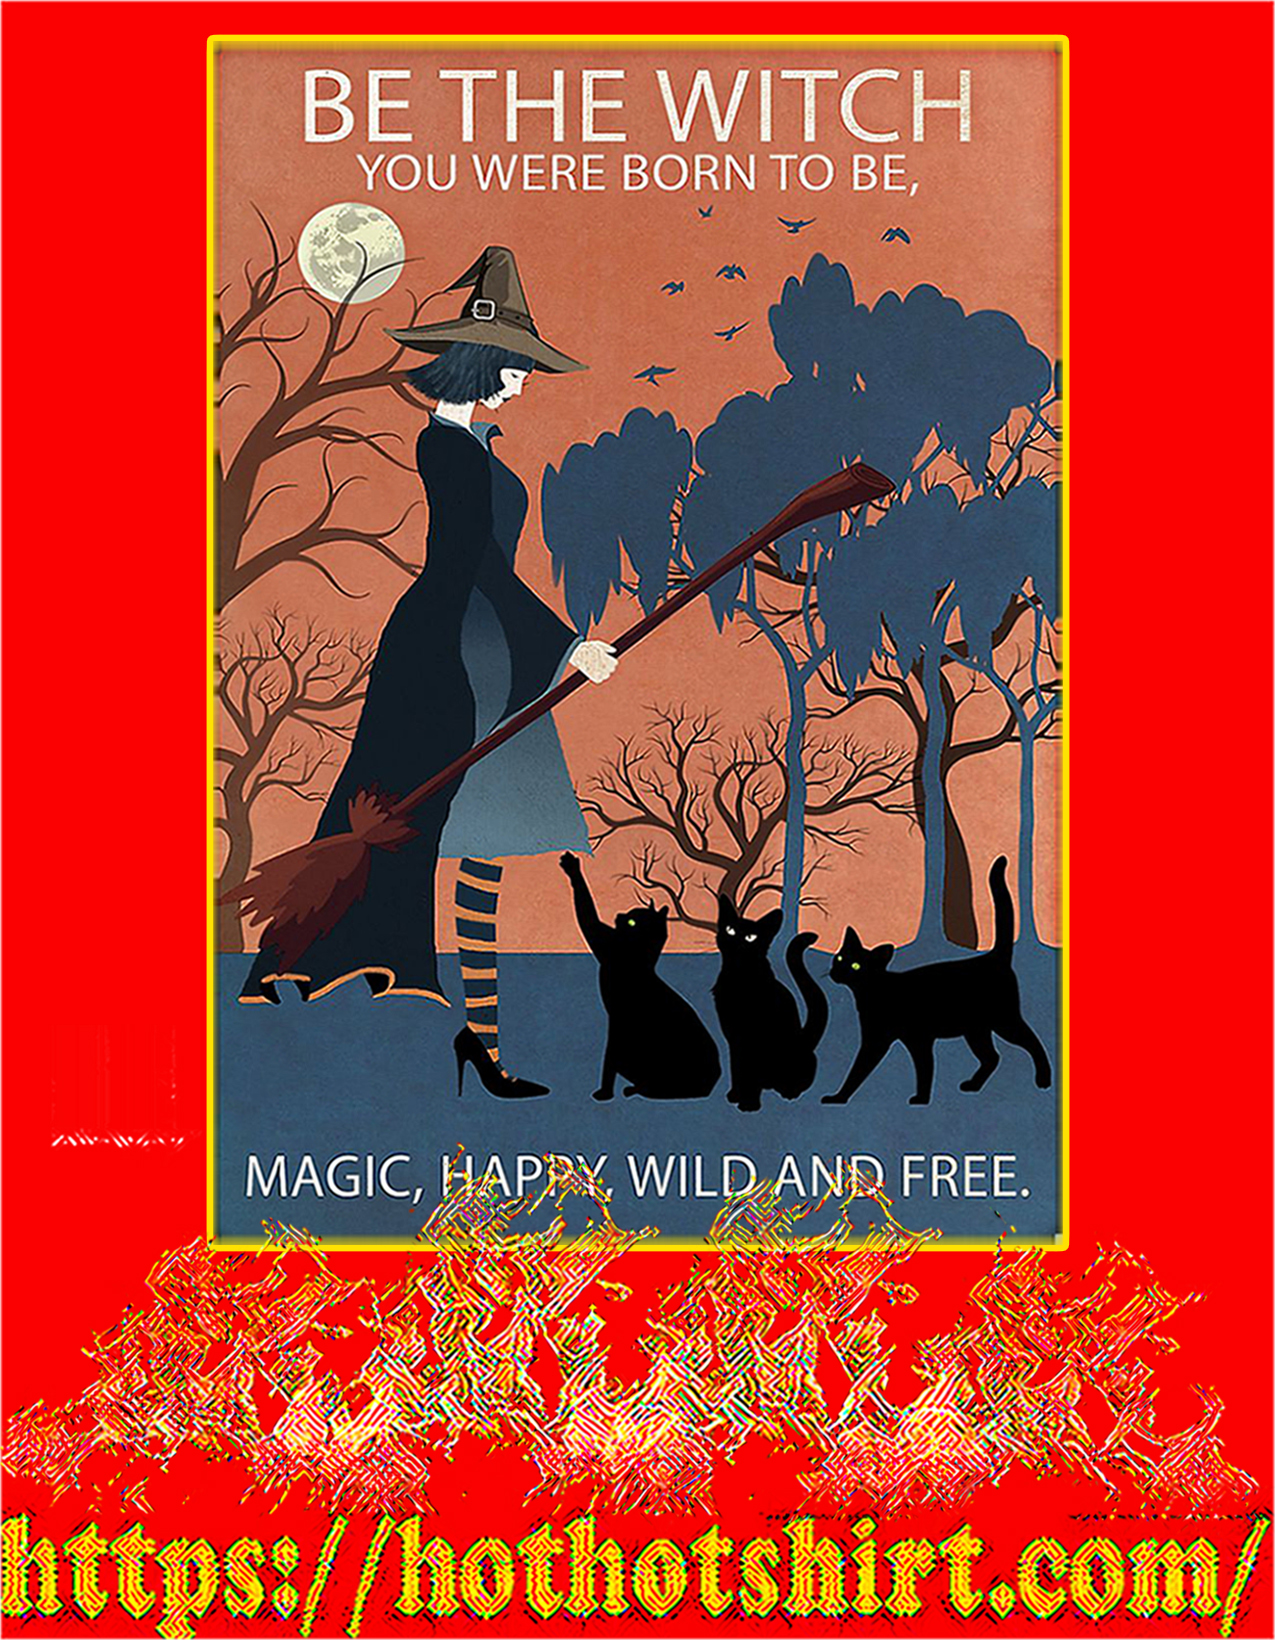 Vintage girl Be the witch you were born to be magic happy wild and free poster - A2